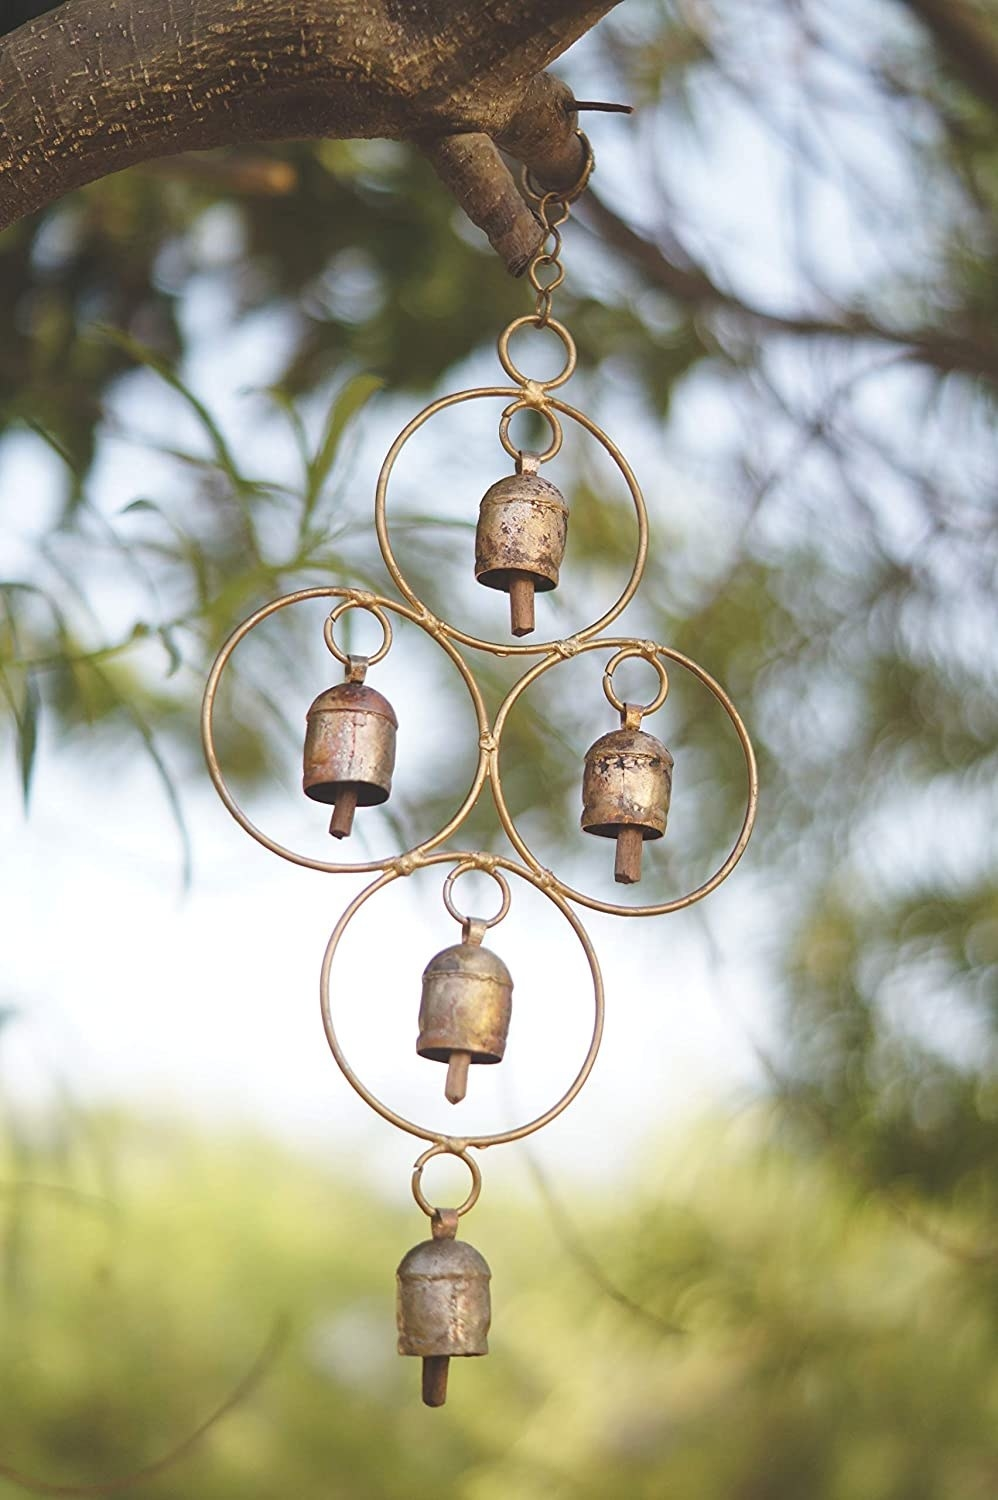 A metal wind chime in a brass colour with 5 metal bells adorned on the geometric design